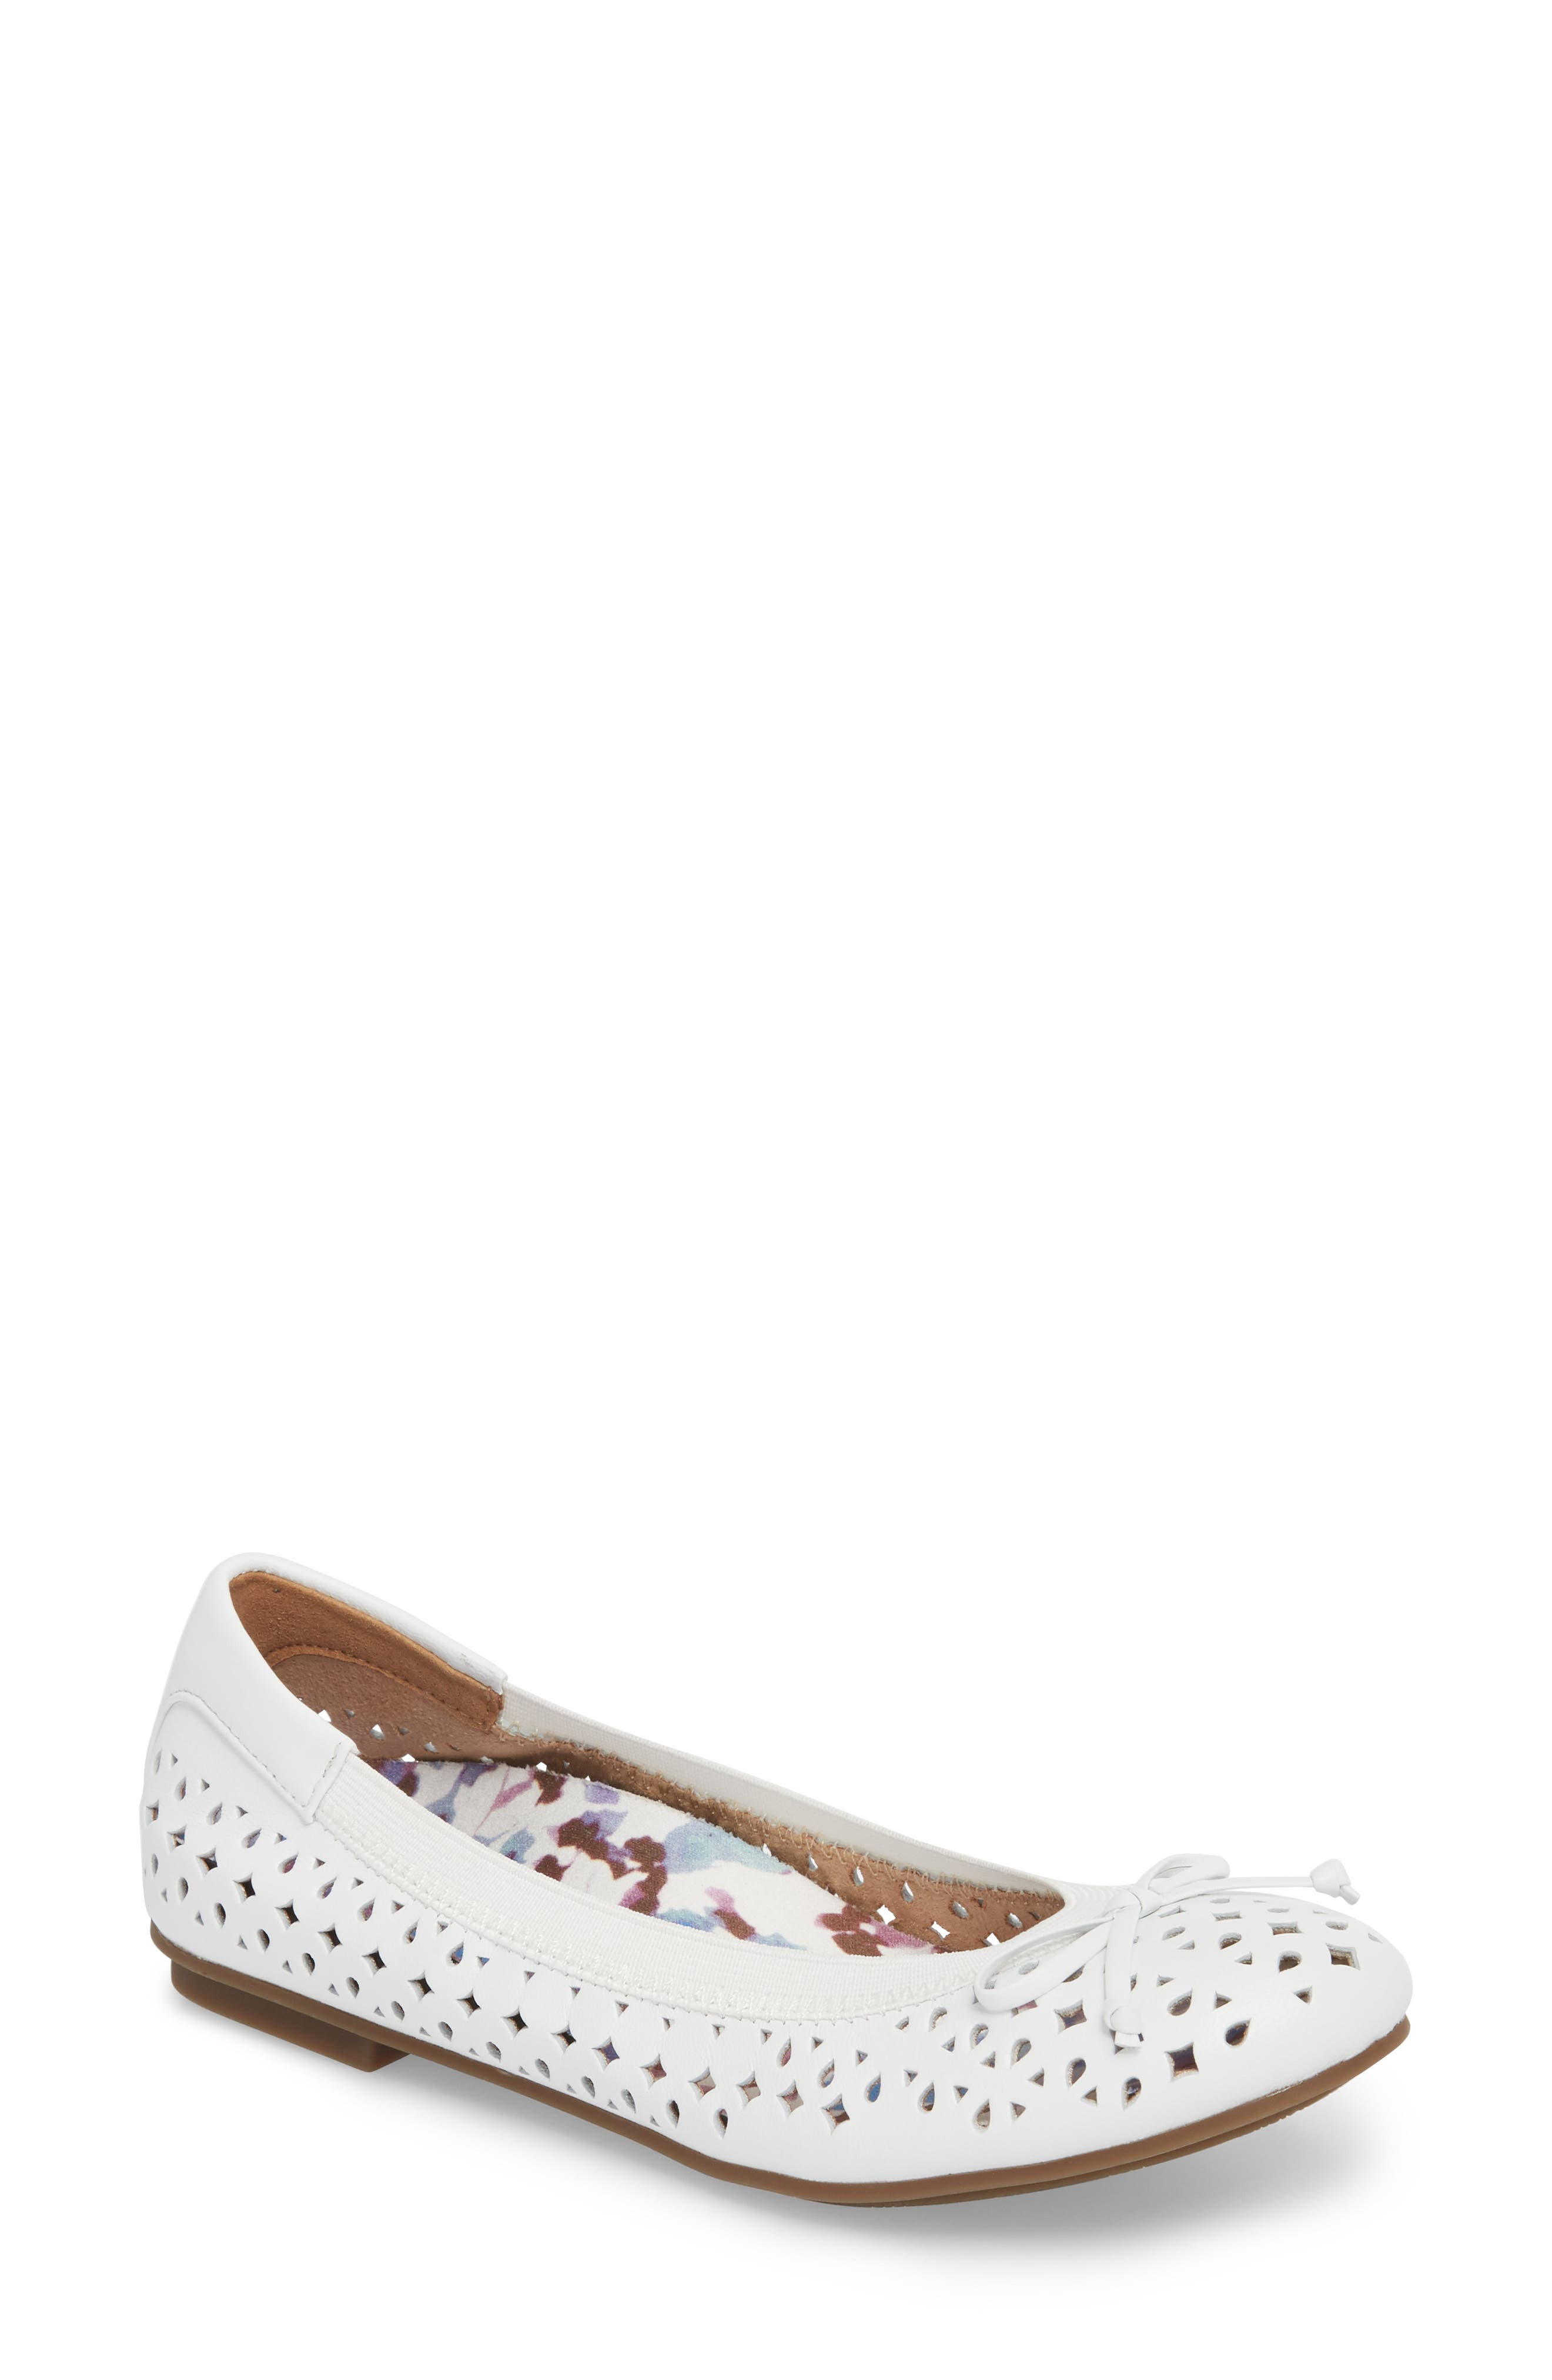 'Surin' Perforated Ballet Flat,                         Main,                         color, 100